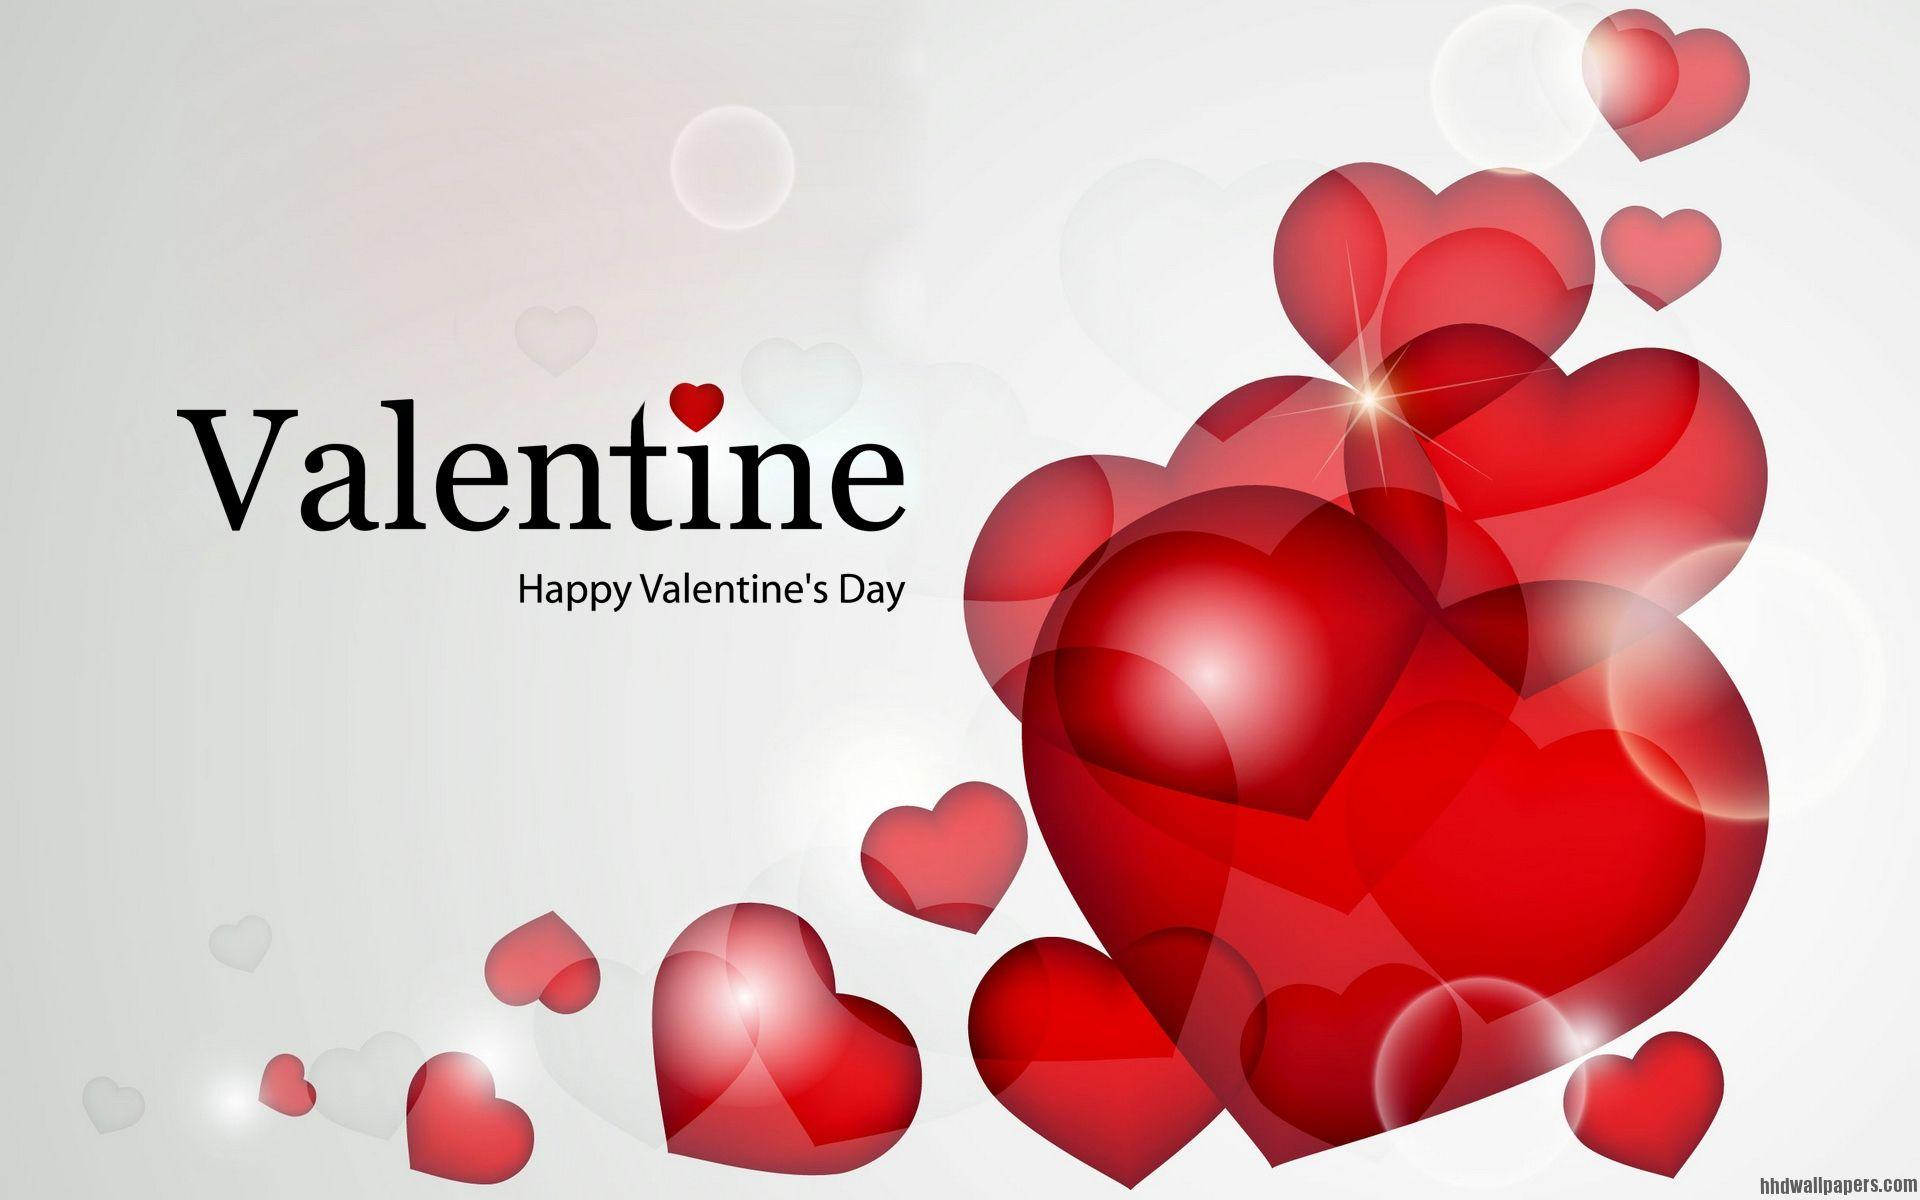 Valentine Day 2018 Background Wallpaper - Download HD Wallpapers